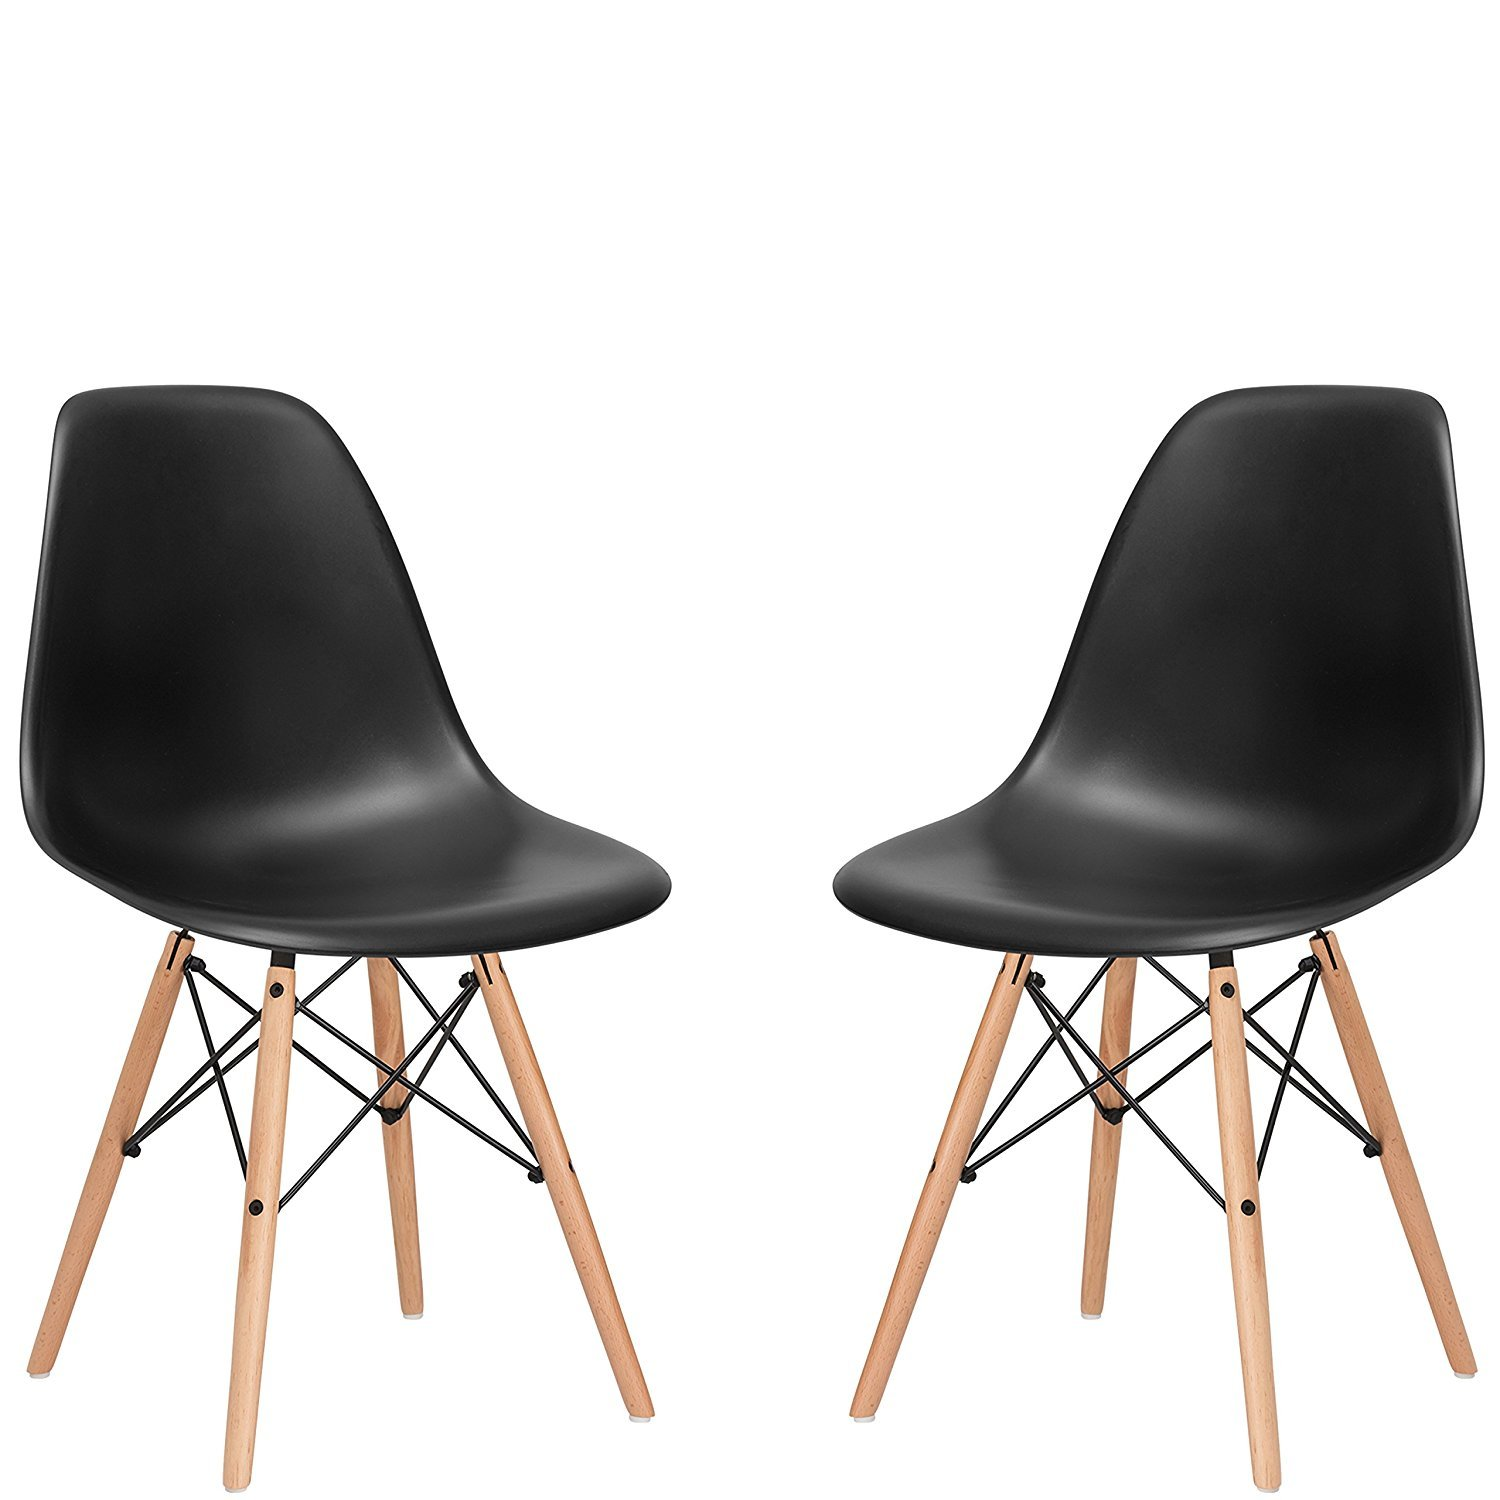 chair dining. nufurn eames style designer black dining/living room chair -set of 2 dining